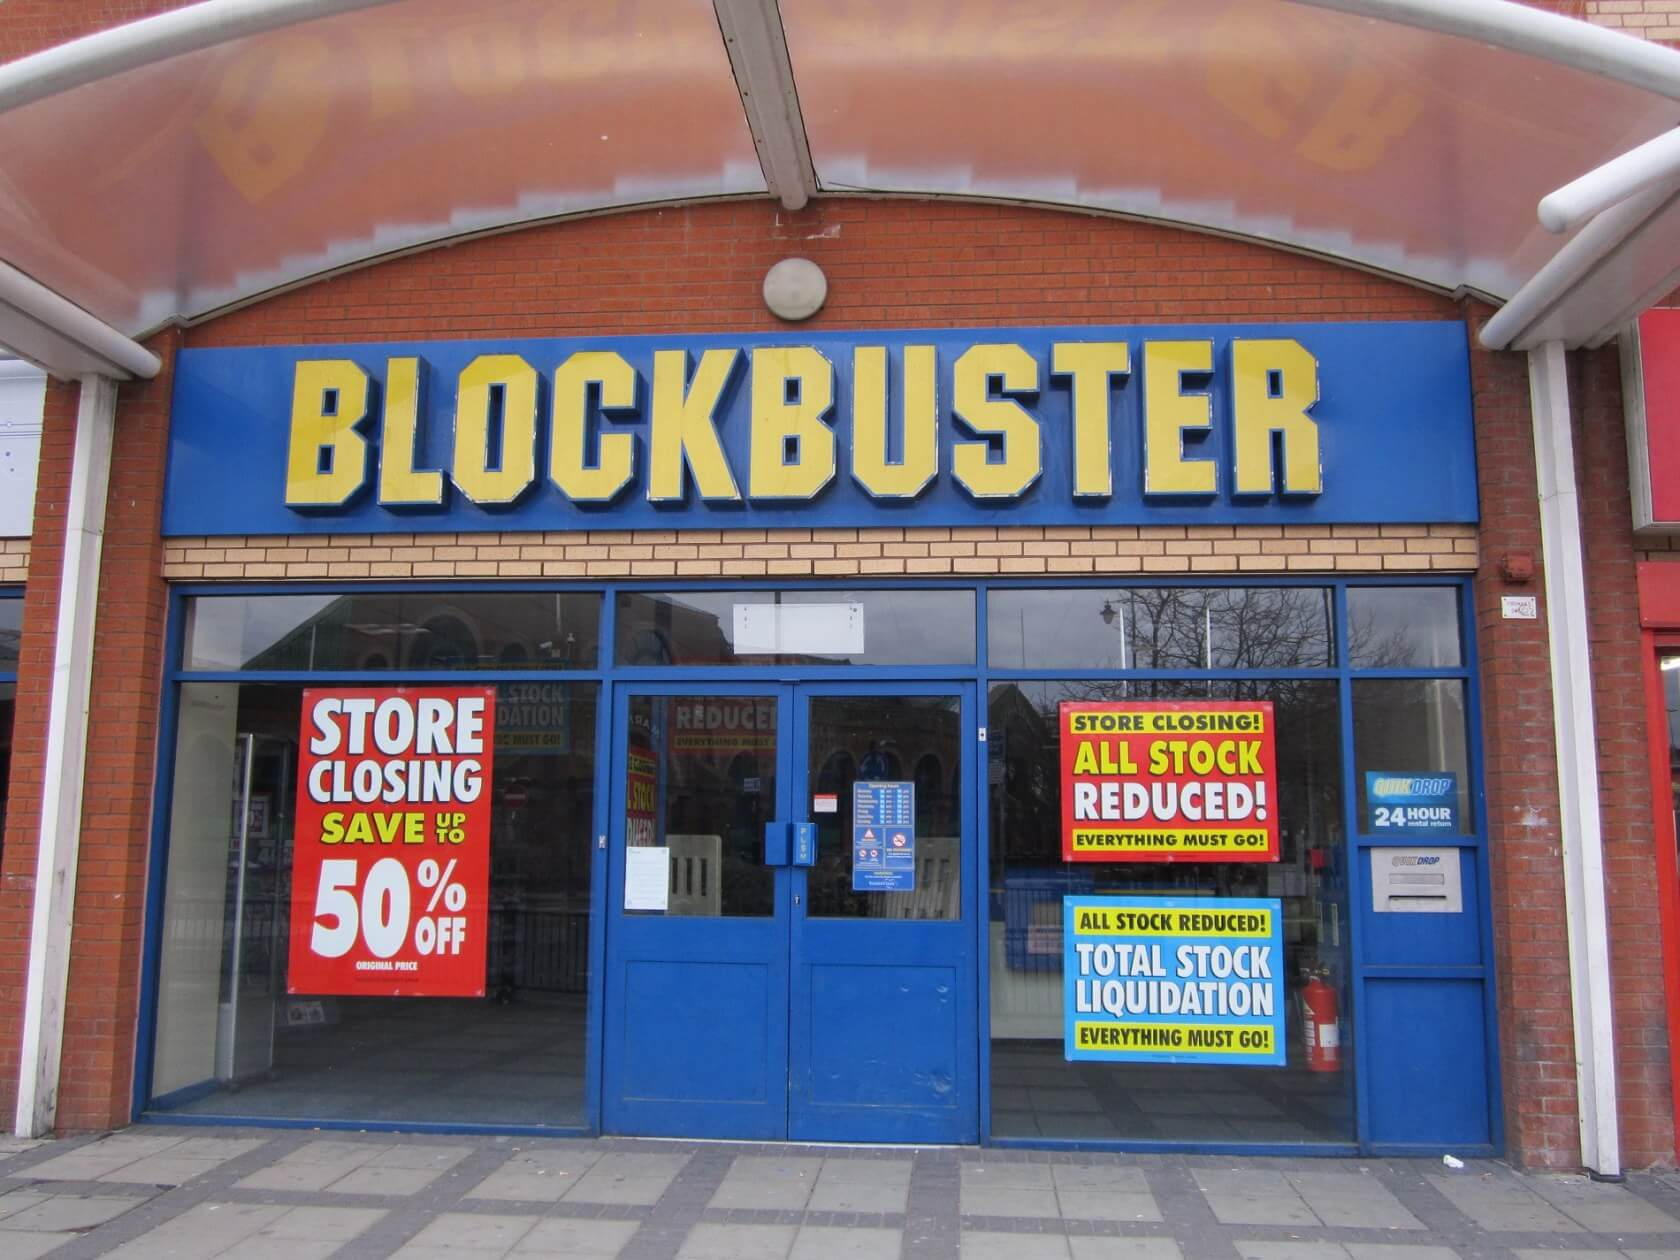 There's only 1 Blockbuster store left